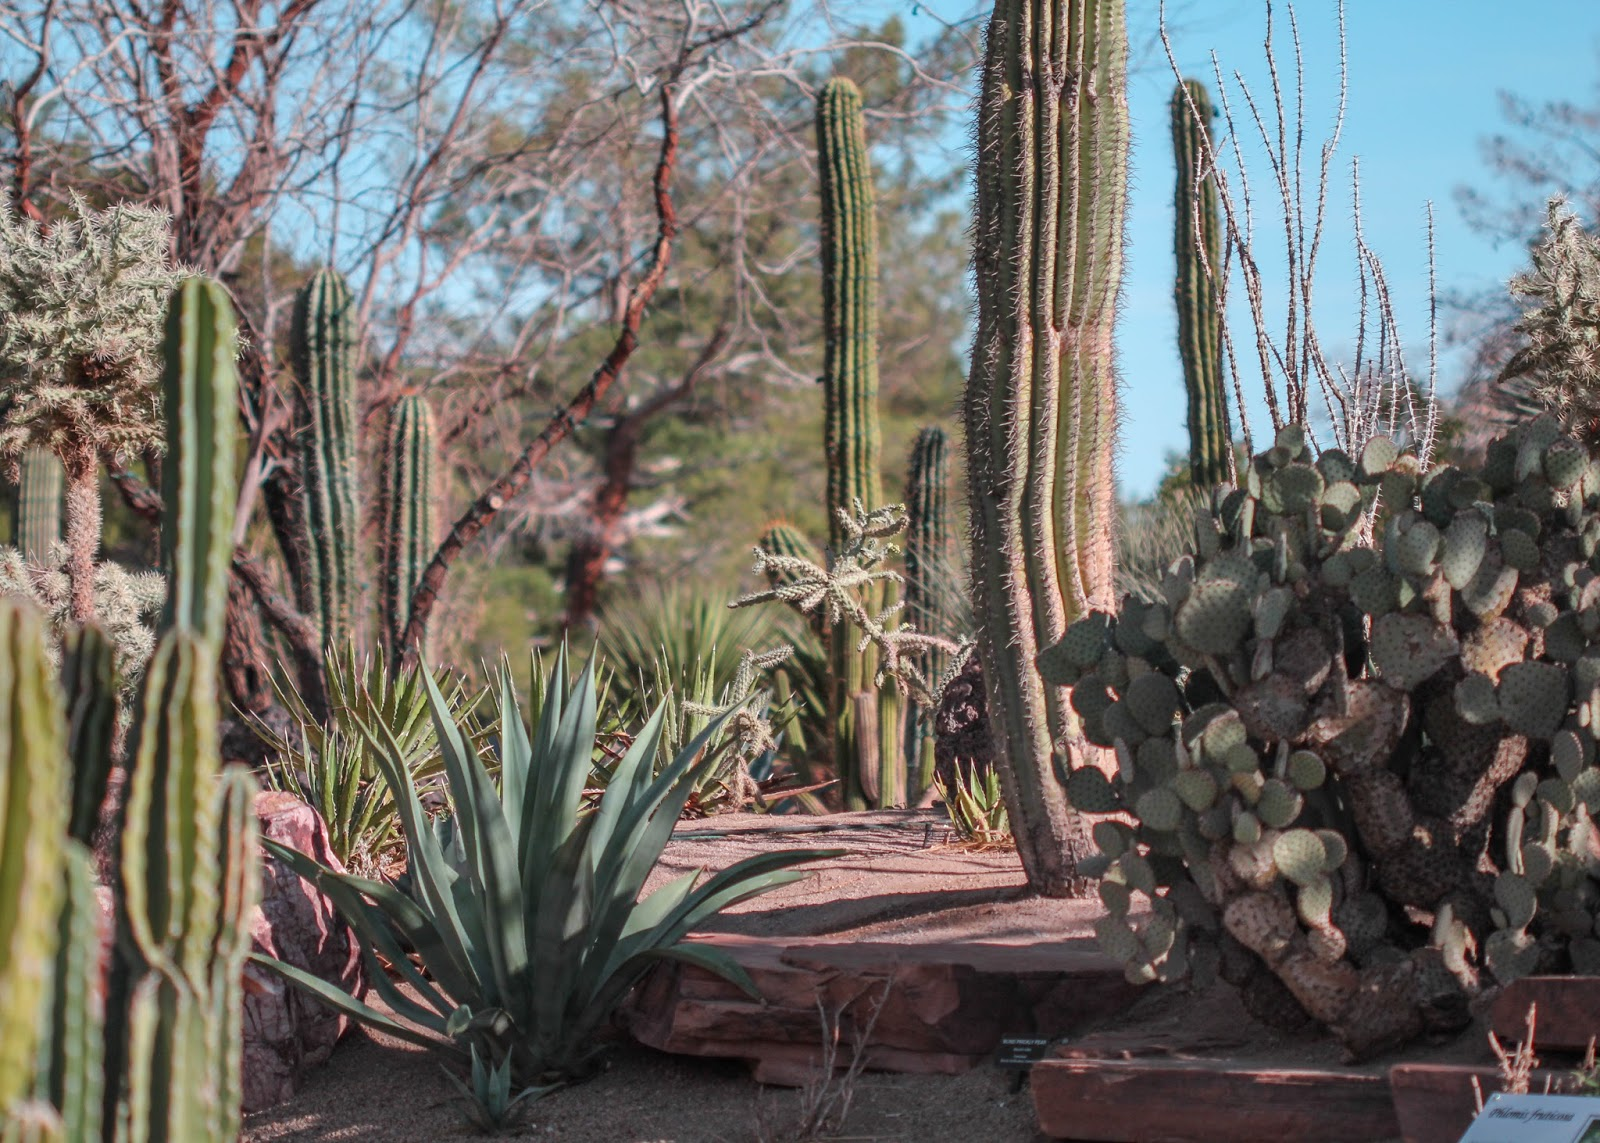 Red House Garden: The Ethel M. Chocolate Factory's Botanical ...